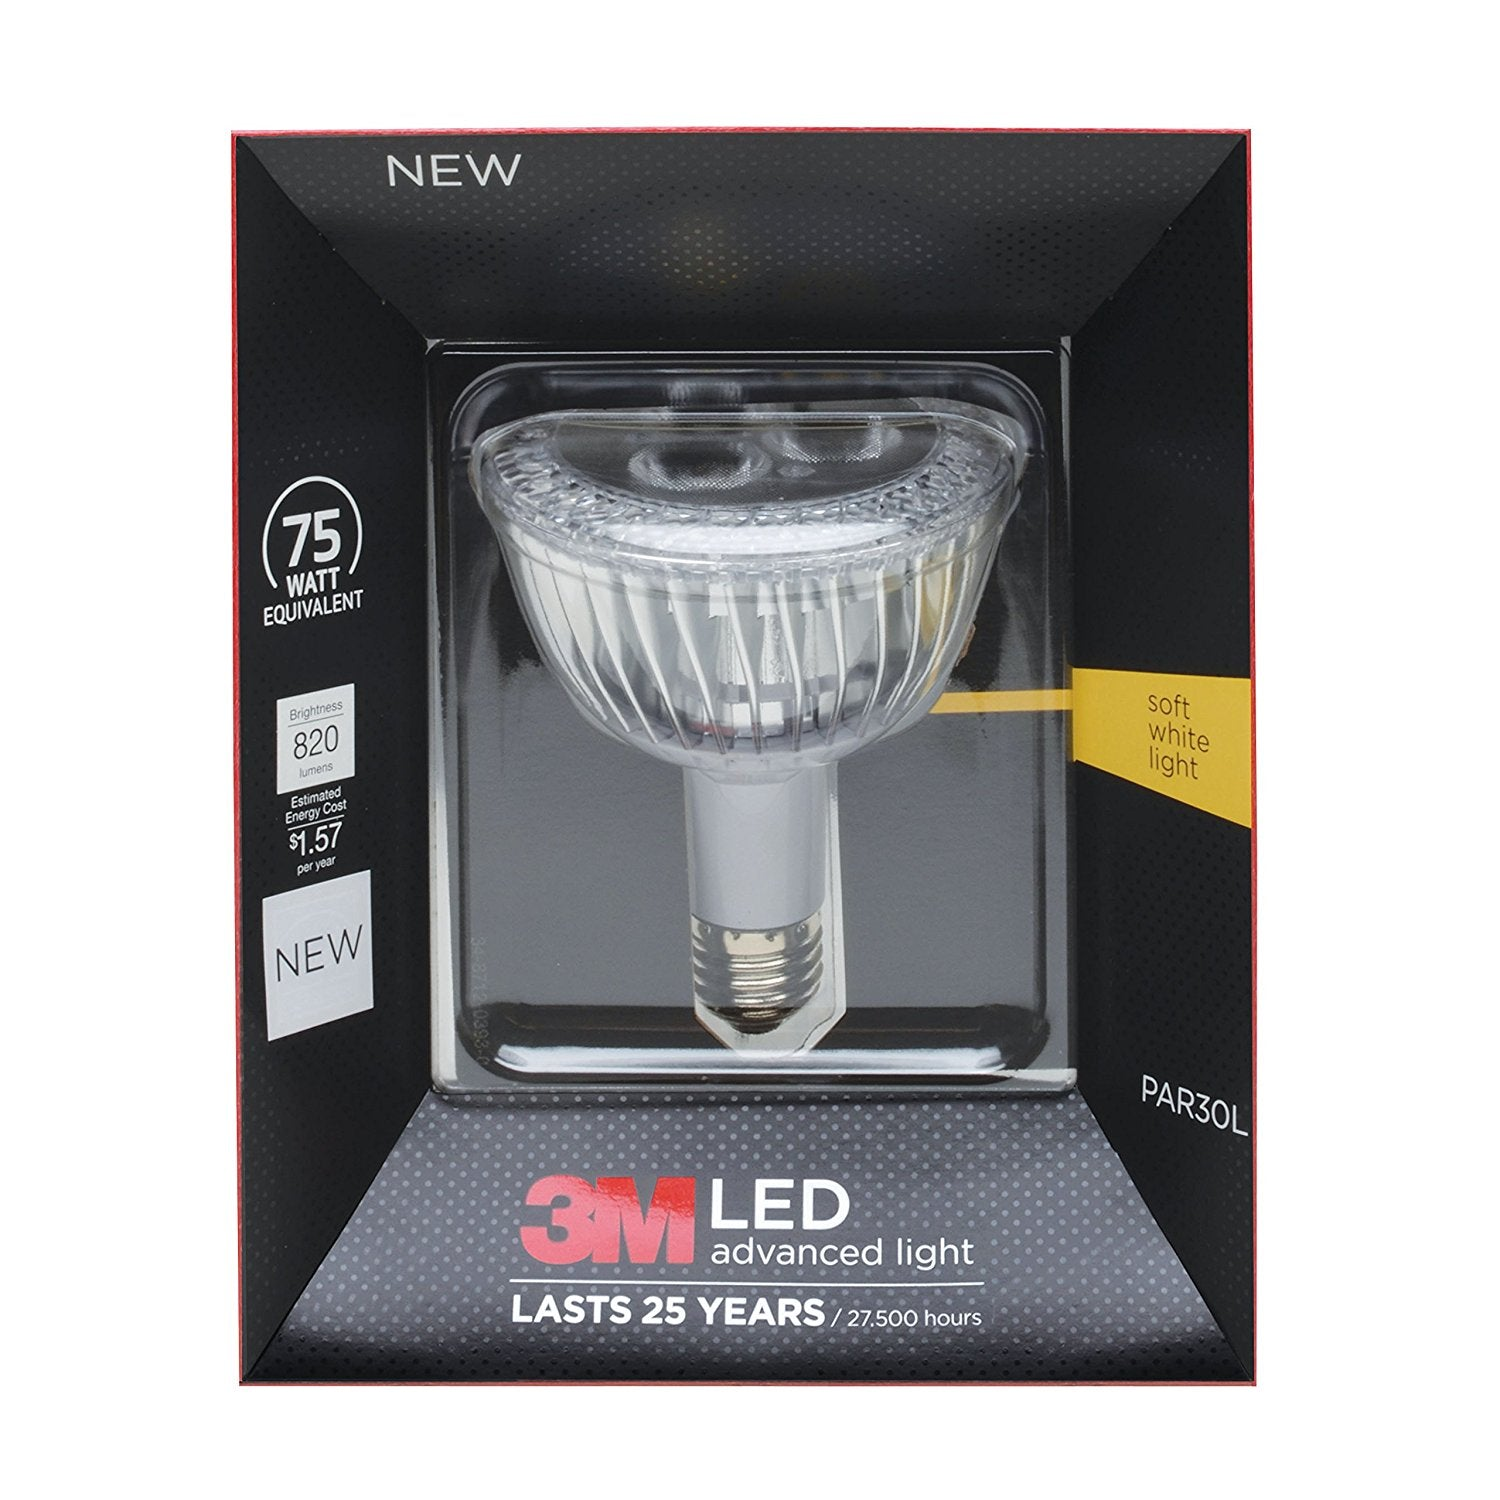 3M LED Advanced Light Bulbs PAR-30L 75 Watts, Soft White